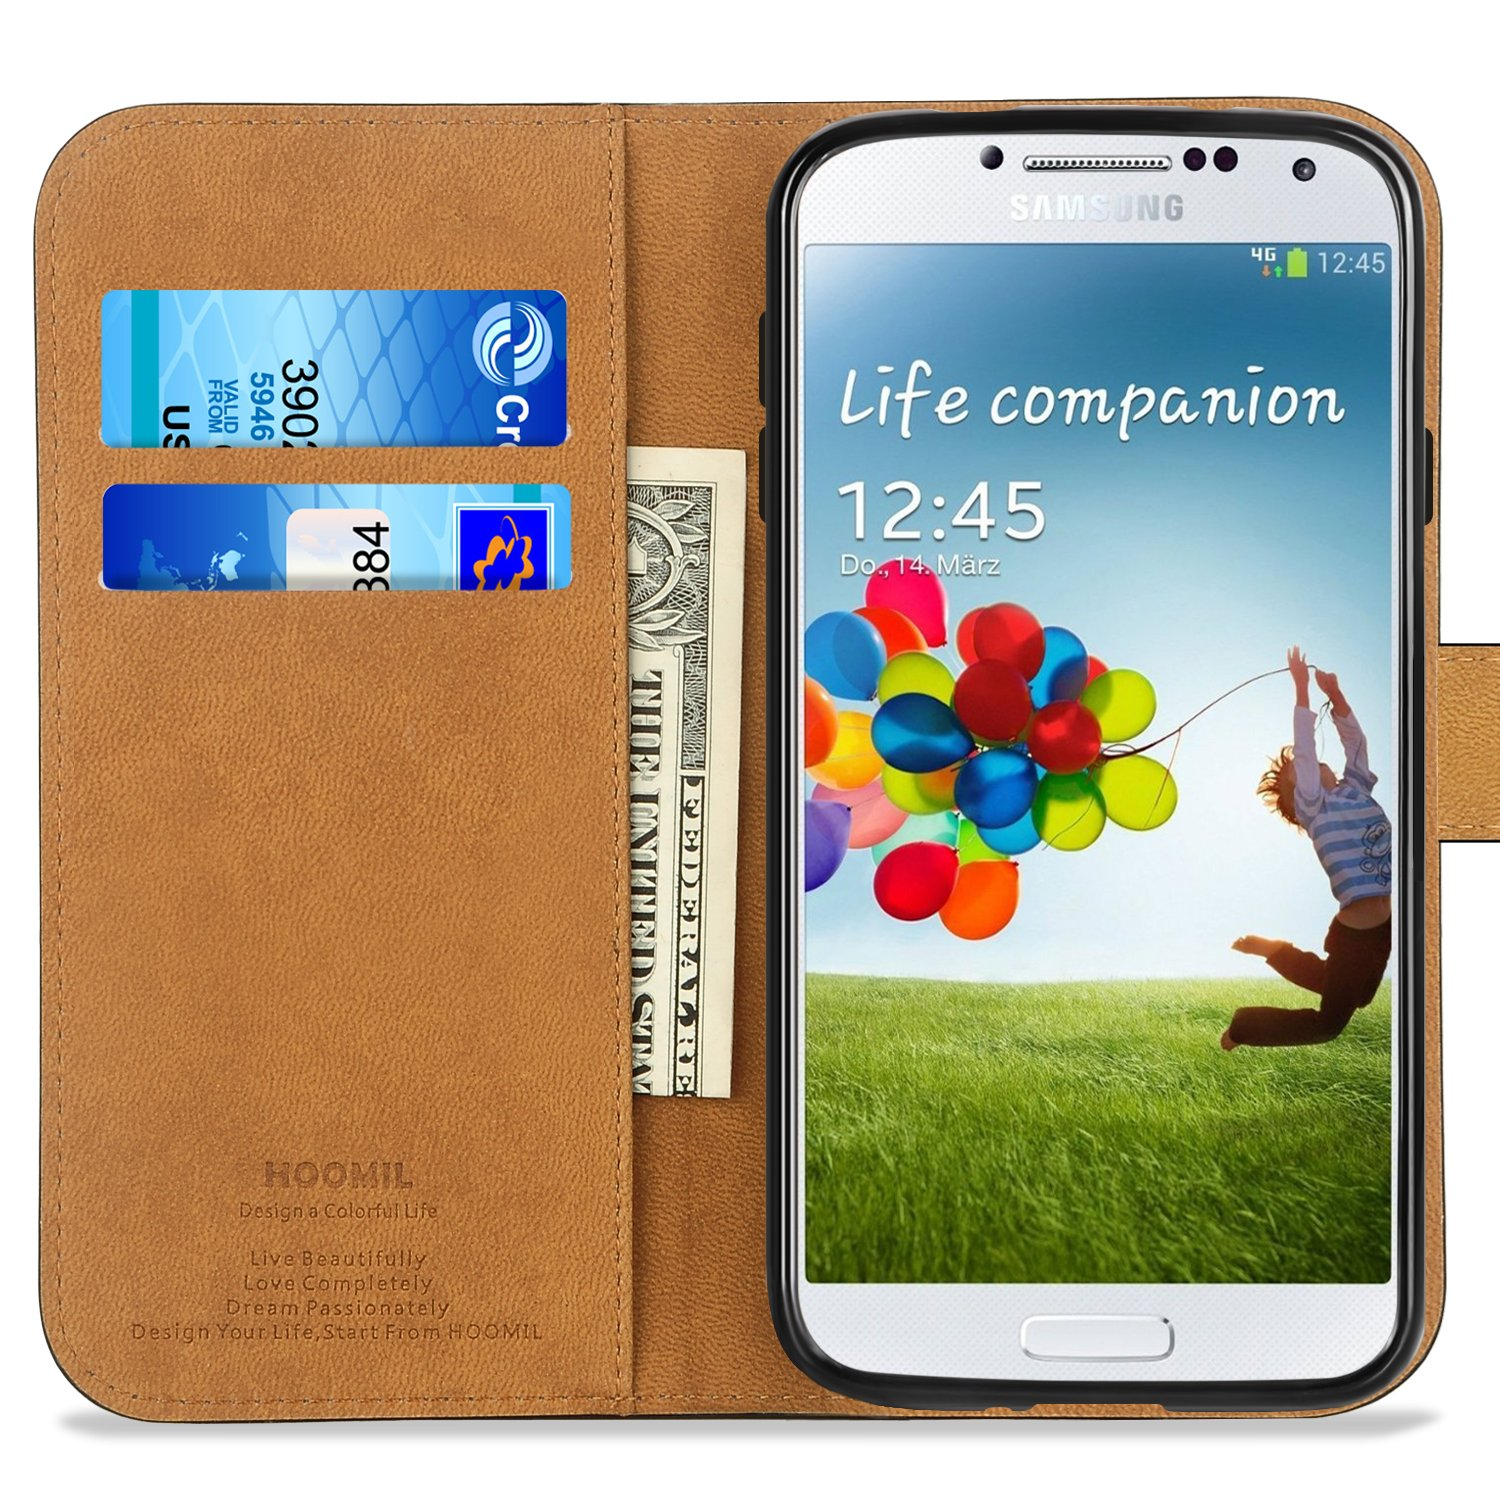 Amazon Galaxy S4 Case HOOMIL Premium Leather Case for Samsung